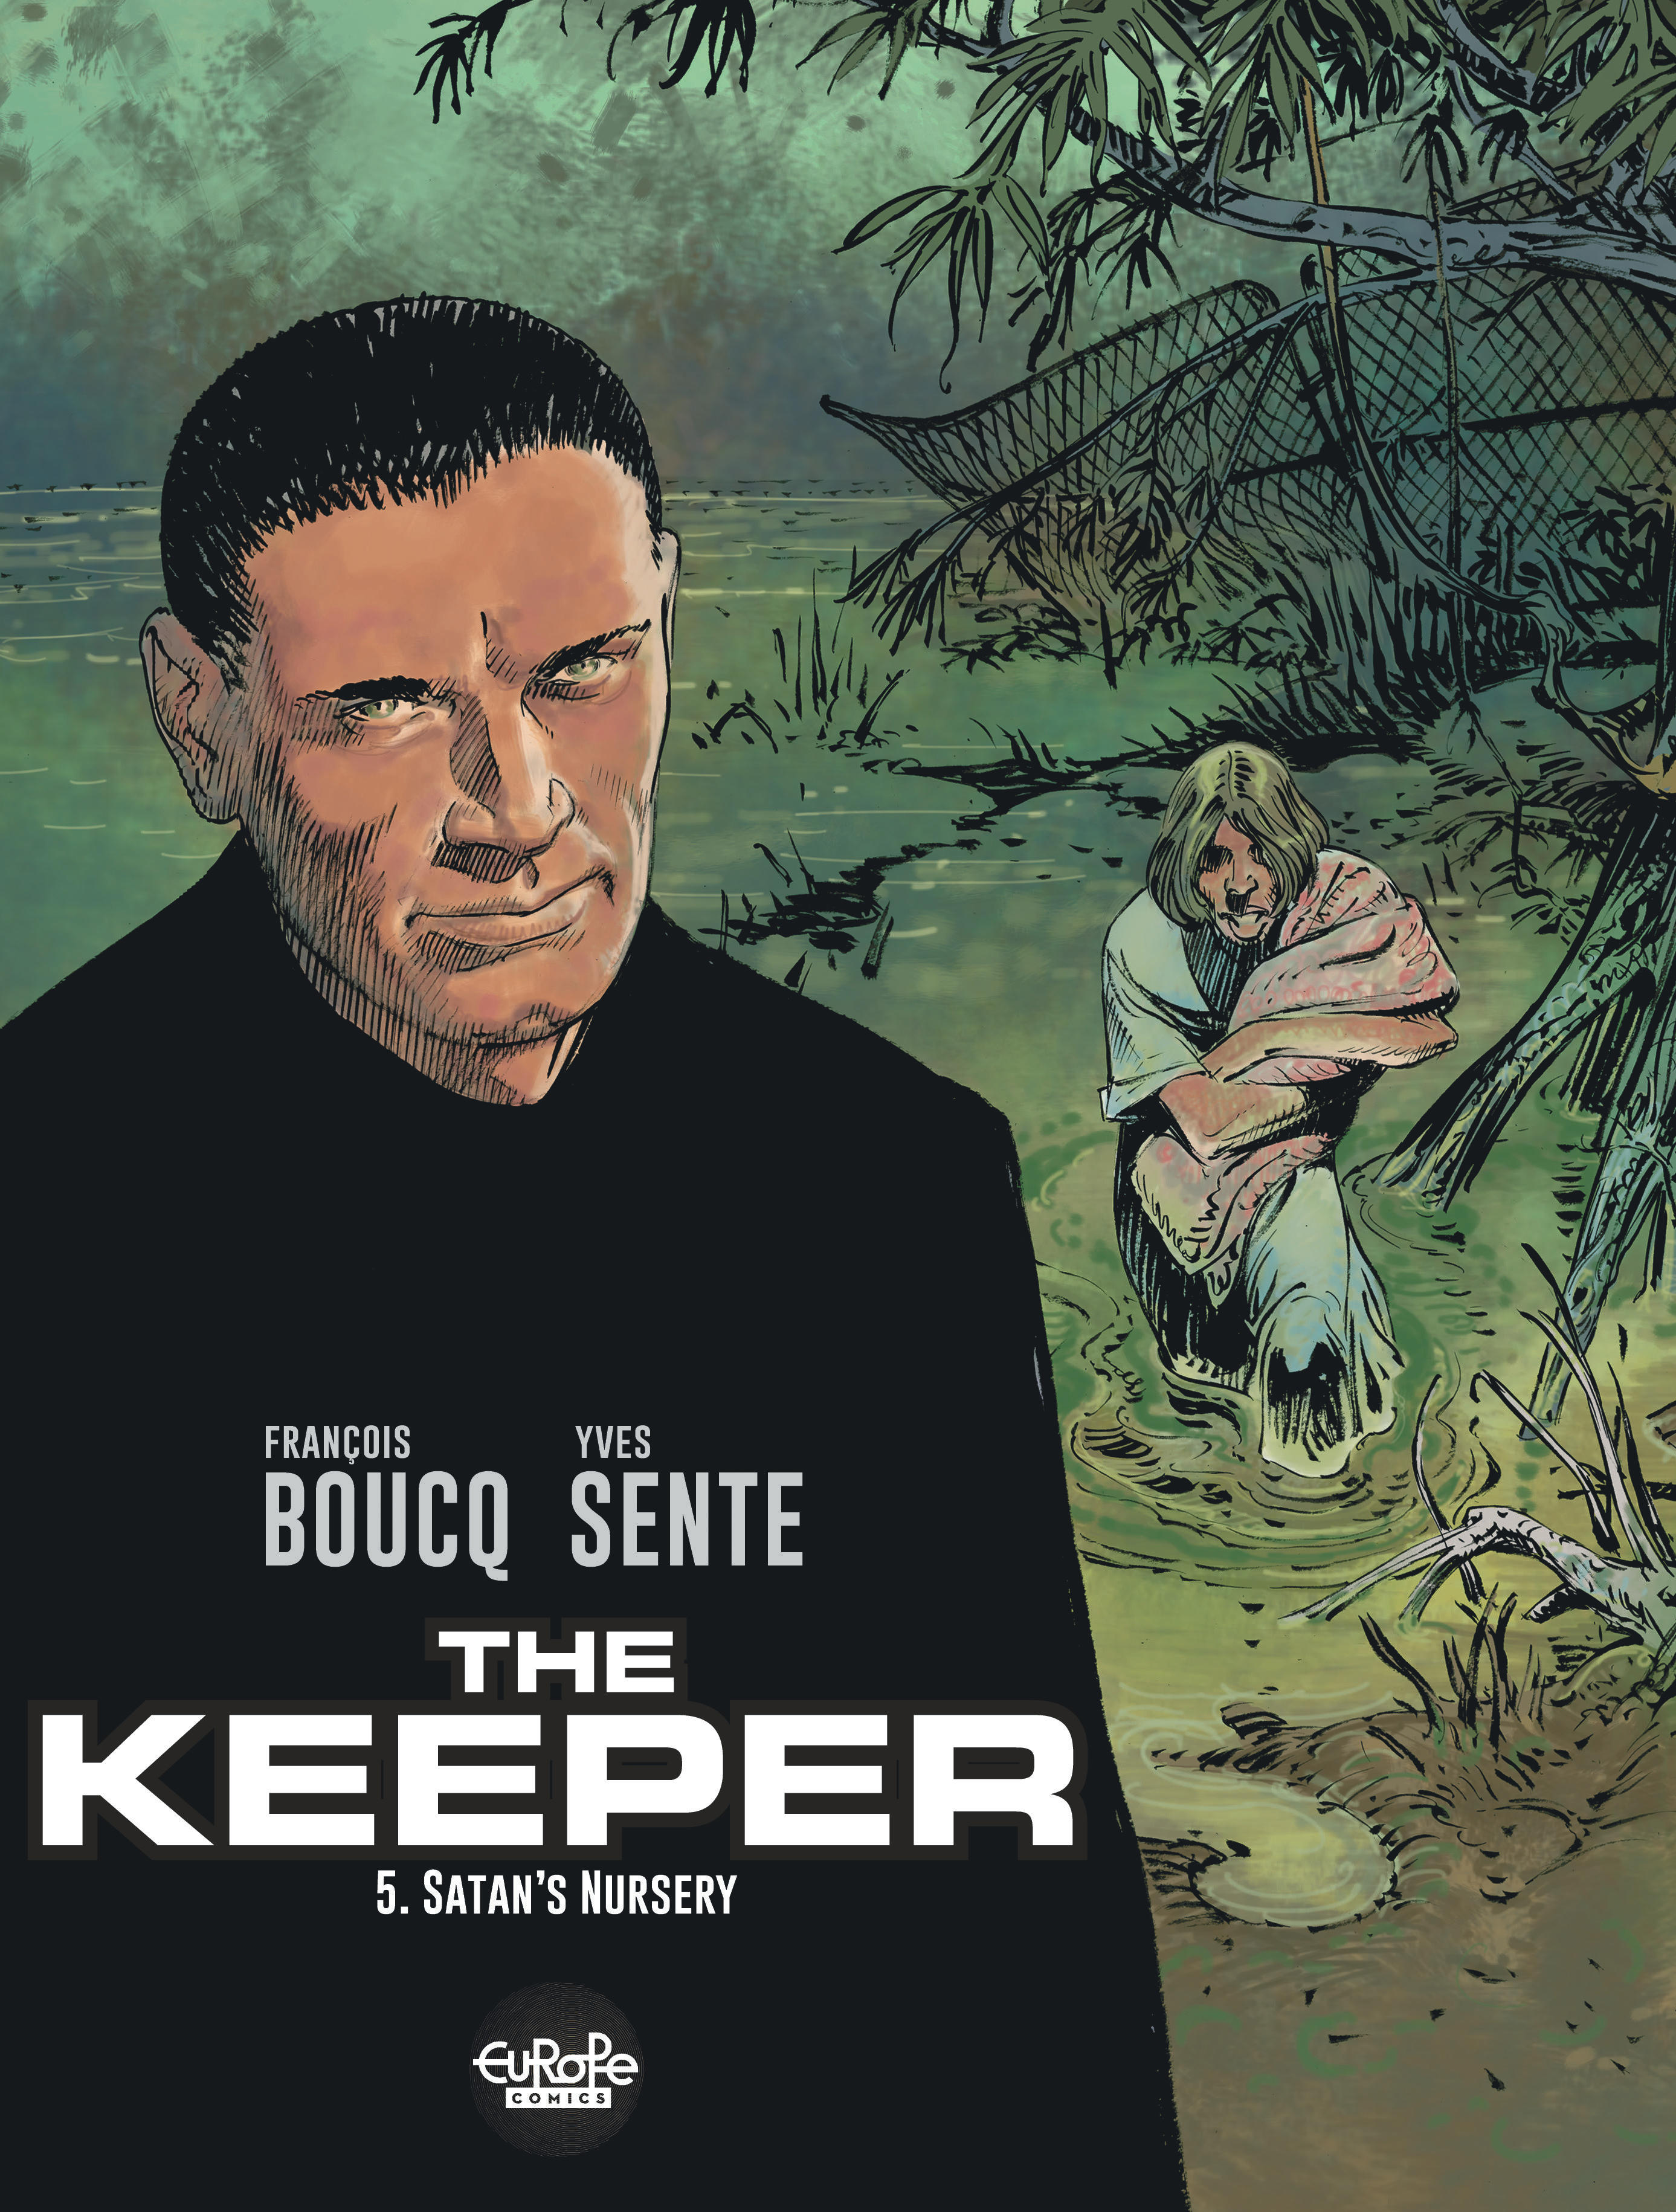 The Keeper 5. Satan's Nursery